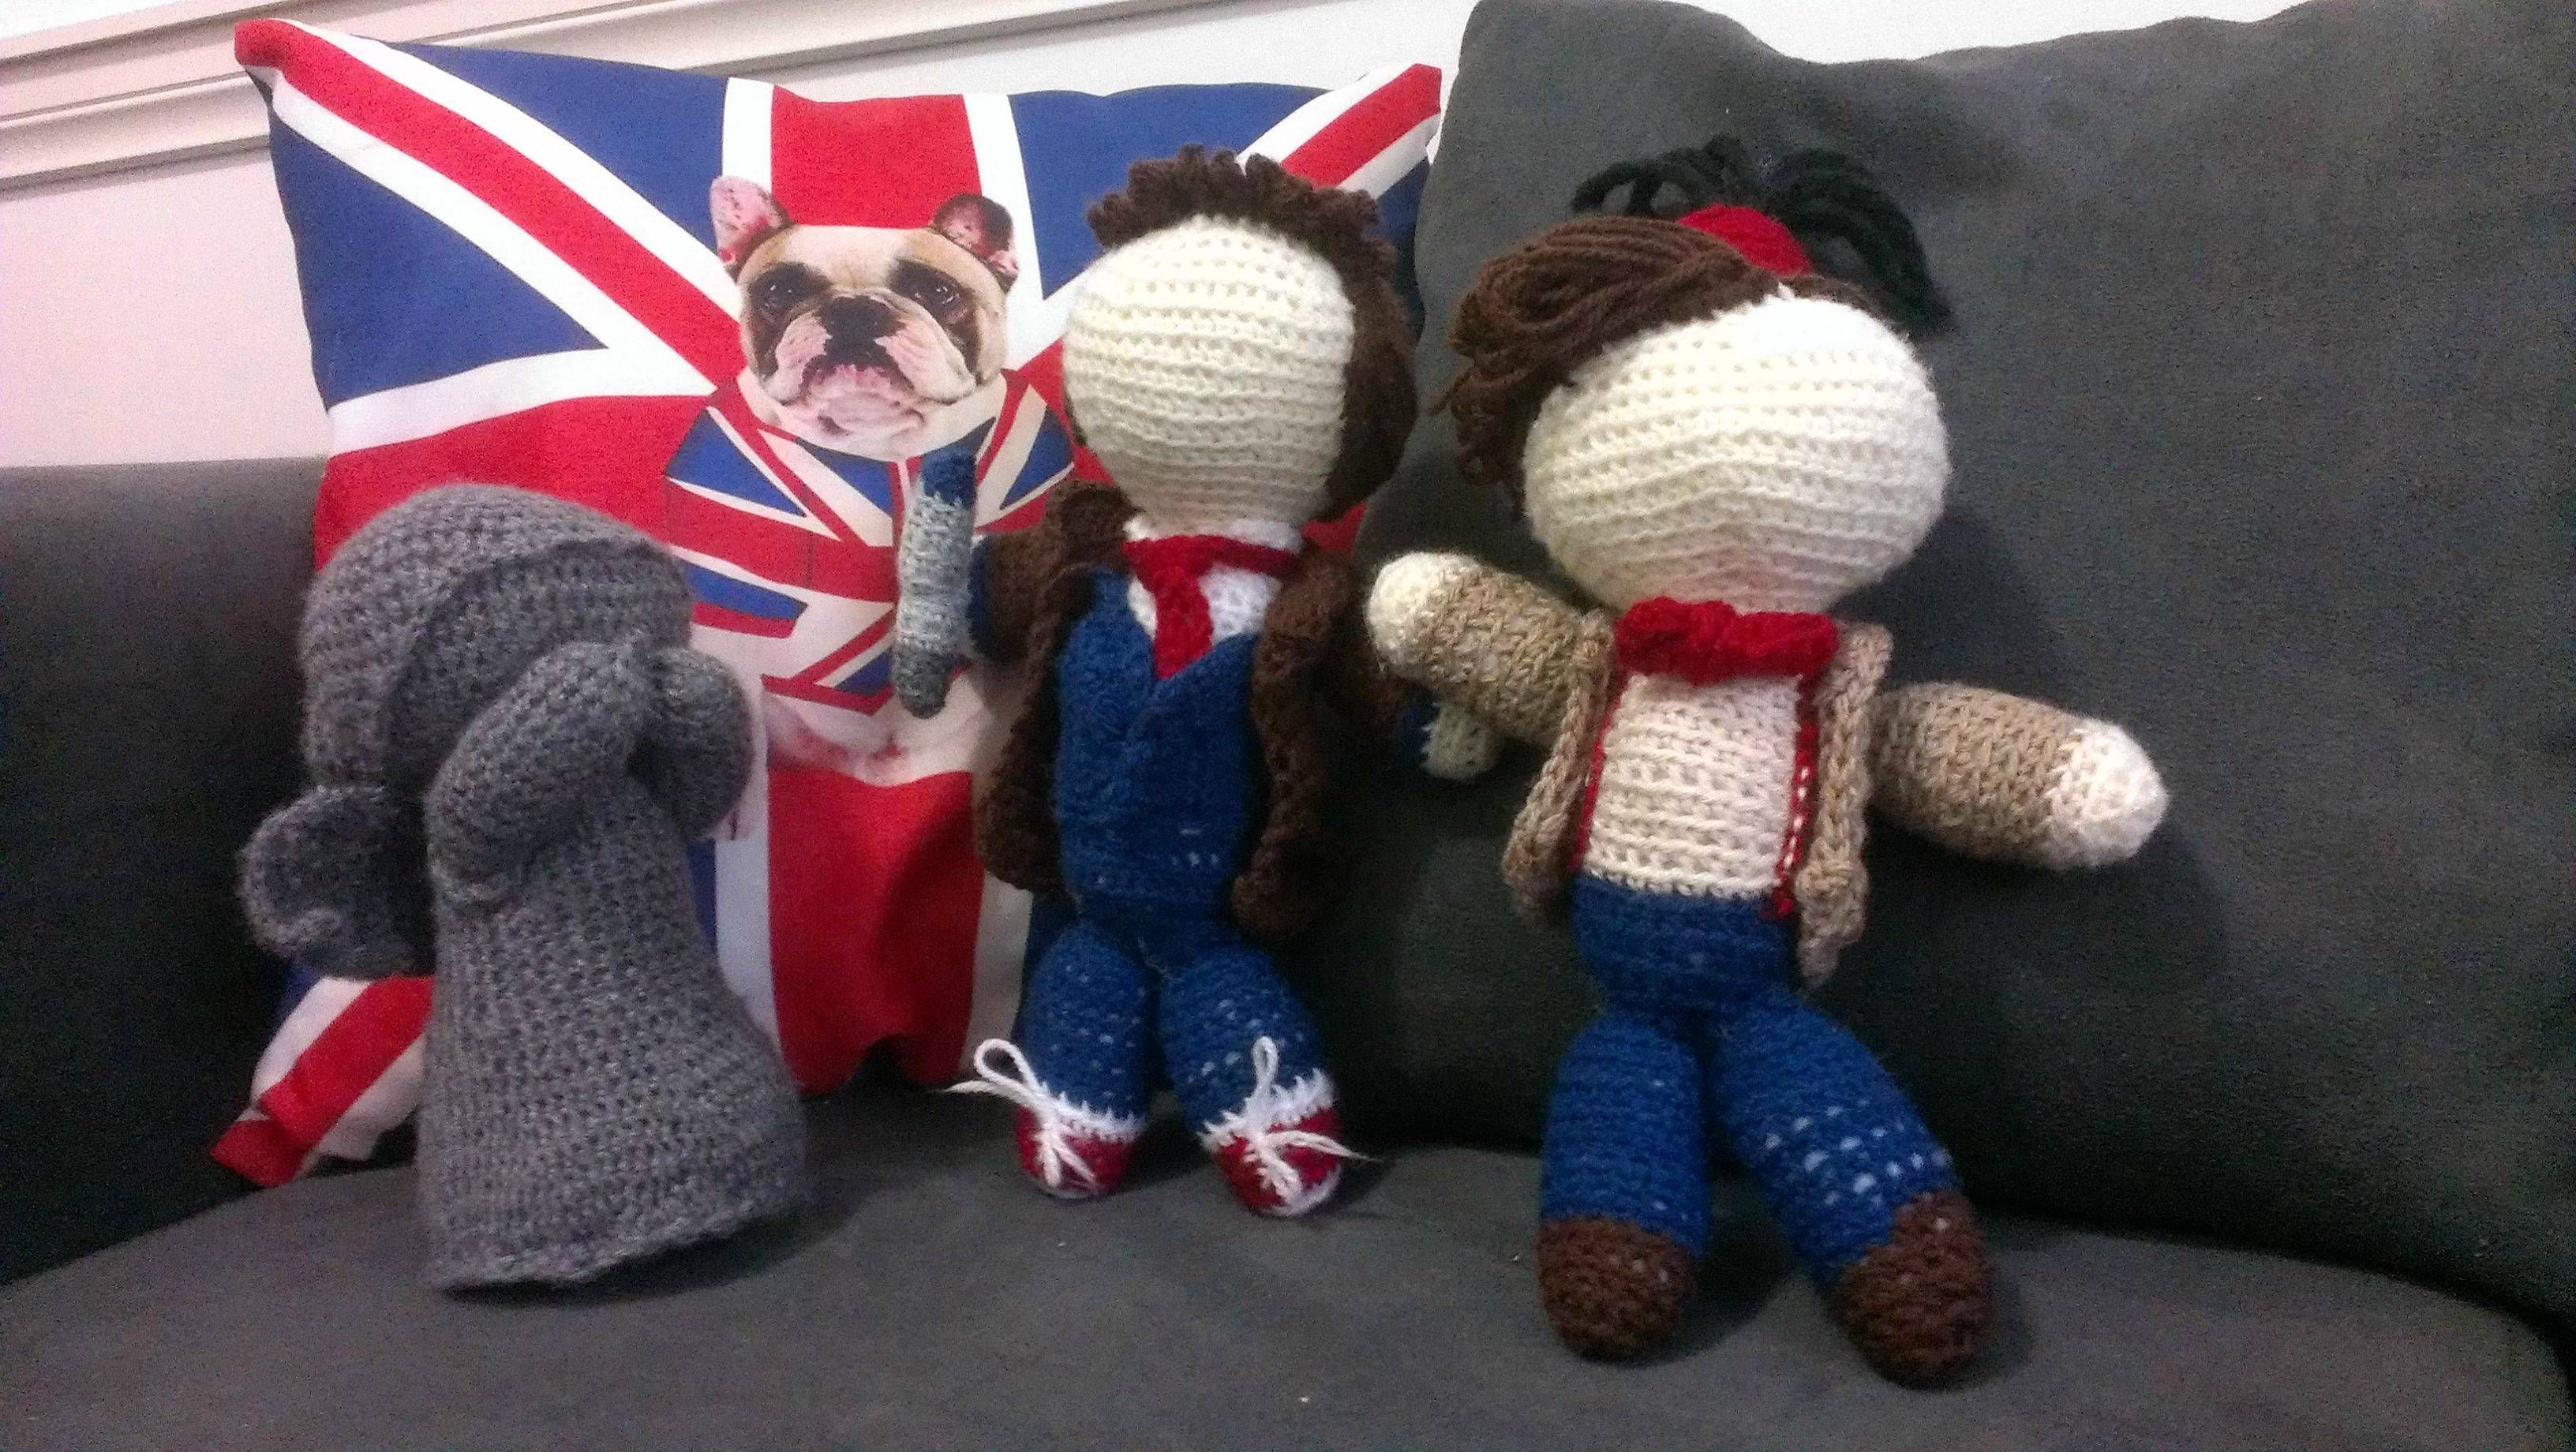 Cute Doctor Who Dolls [not sure if purchasable]